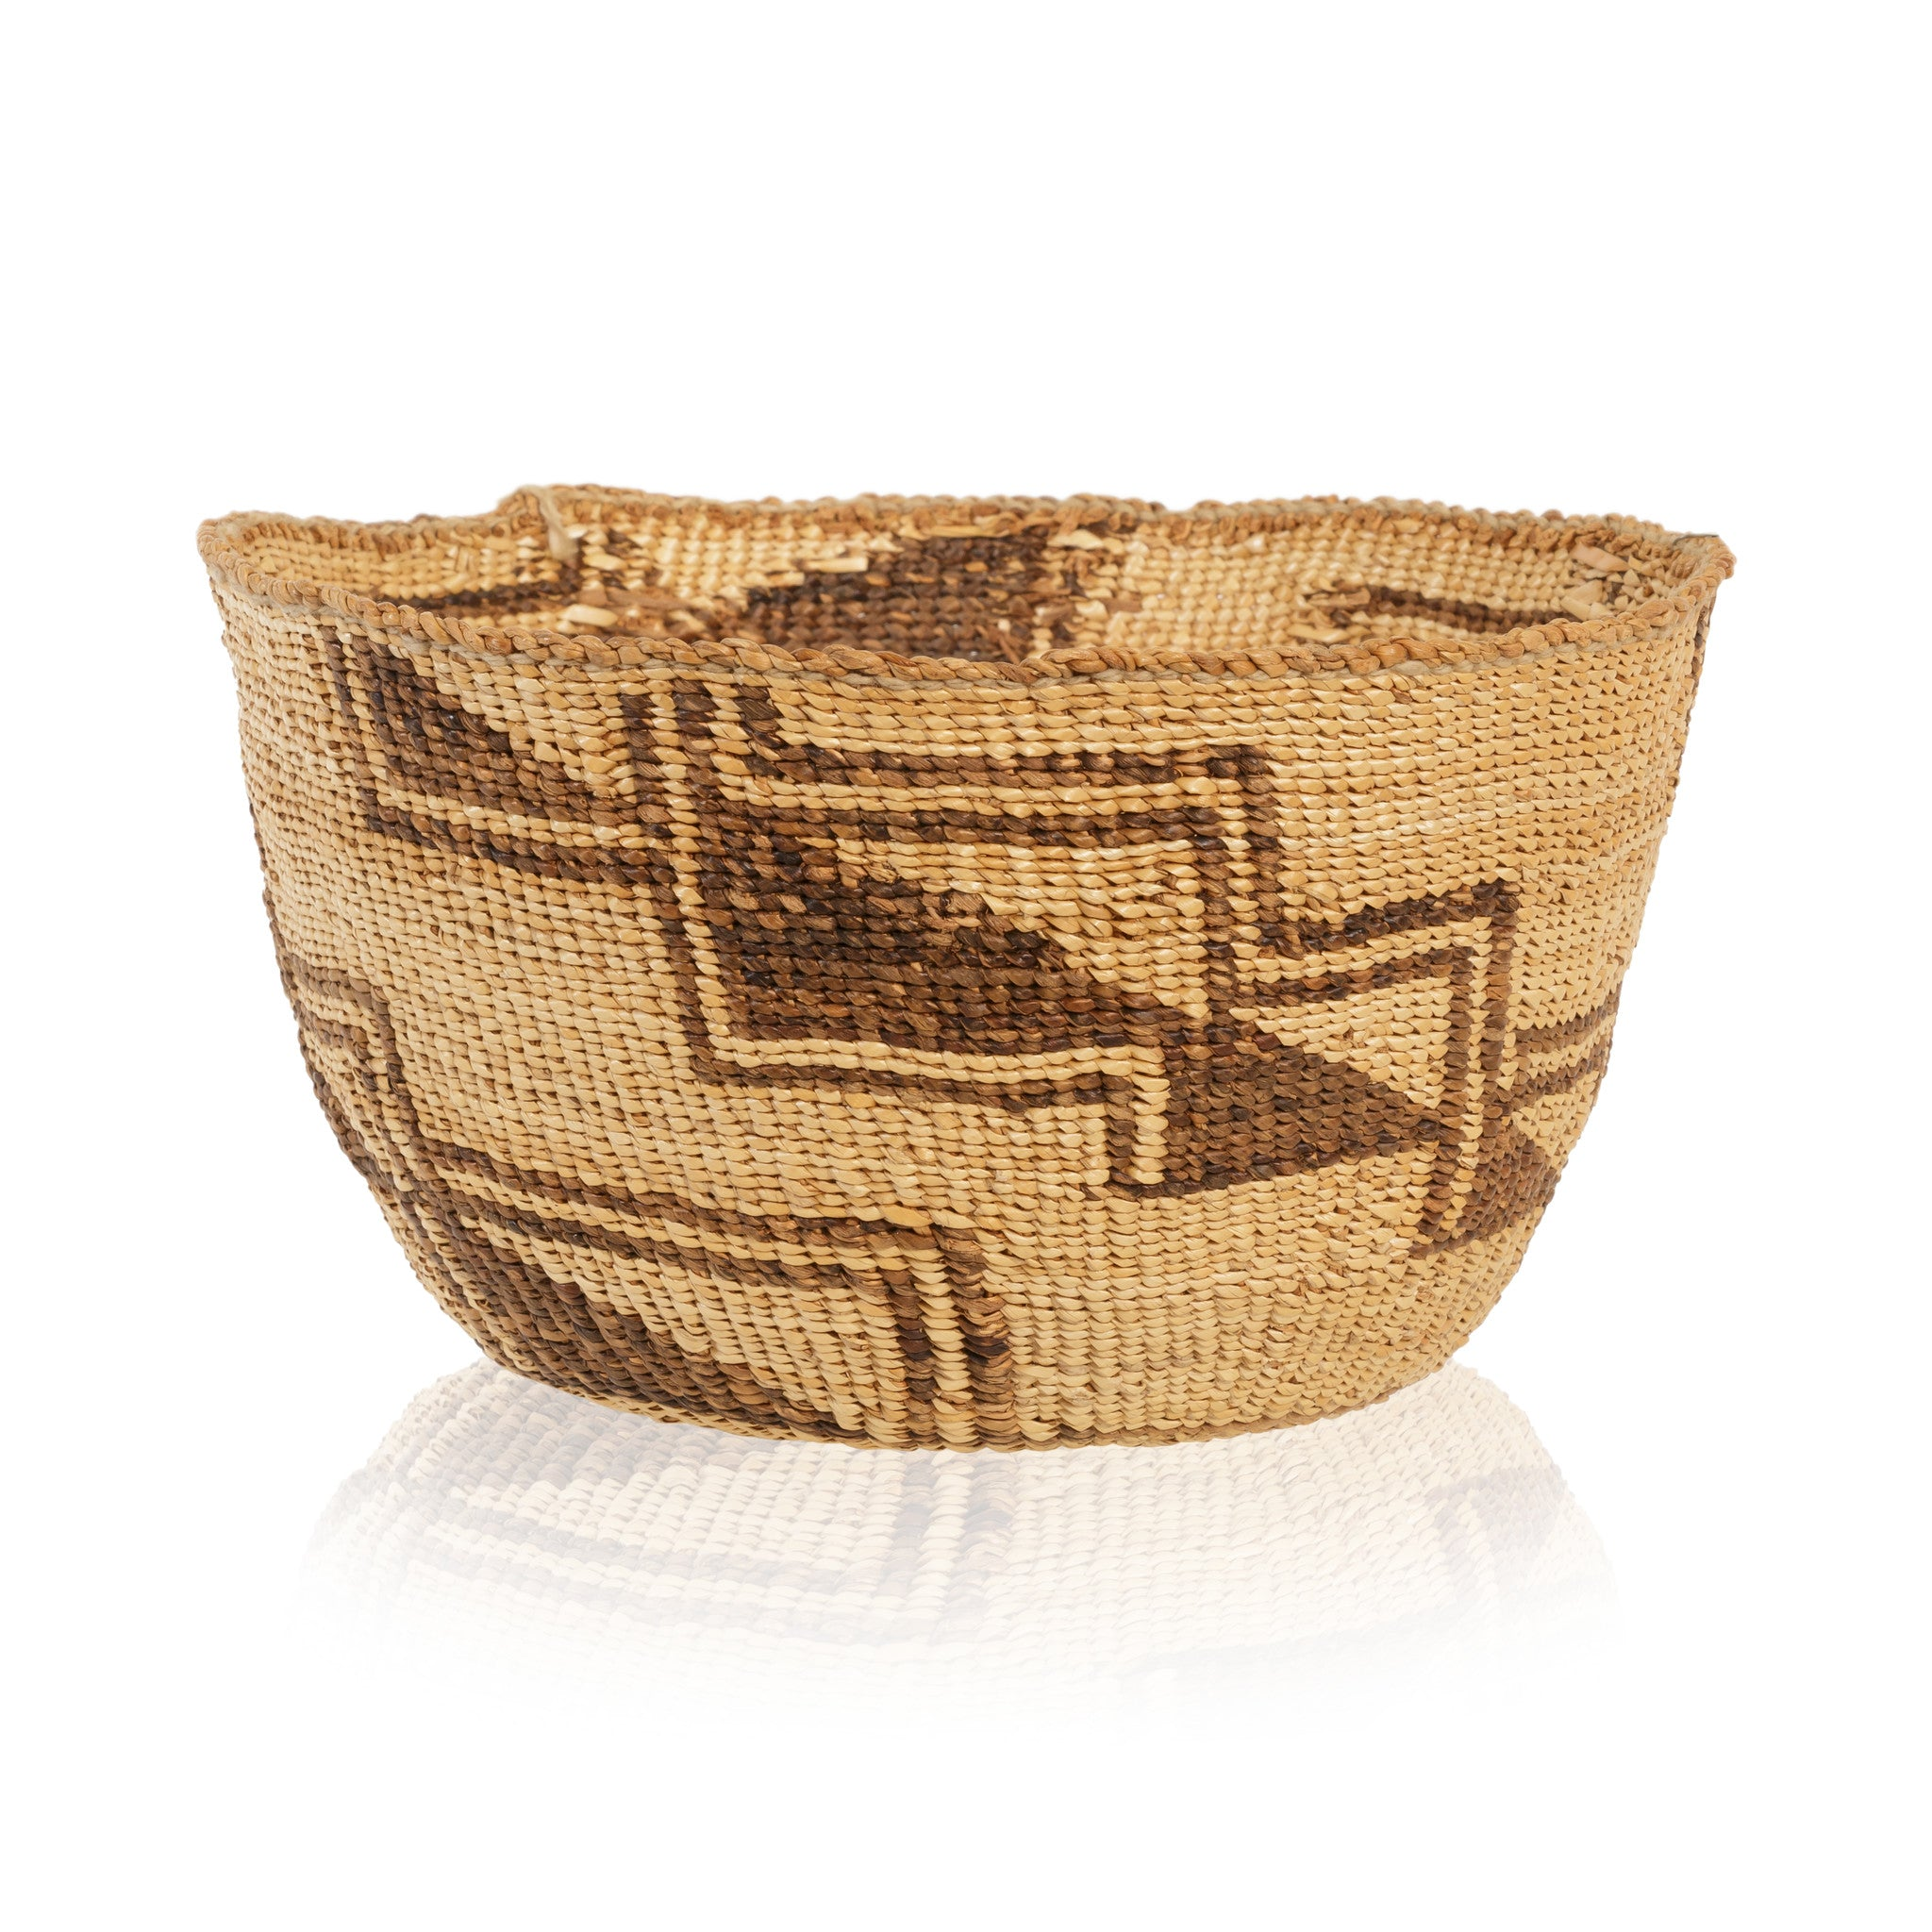 Klamath Hat  Basket baskets, hat baskets, klamath